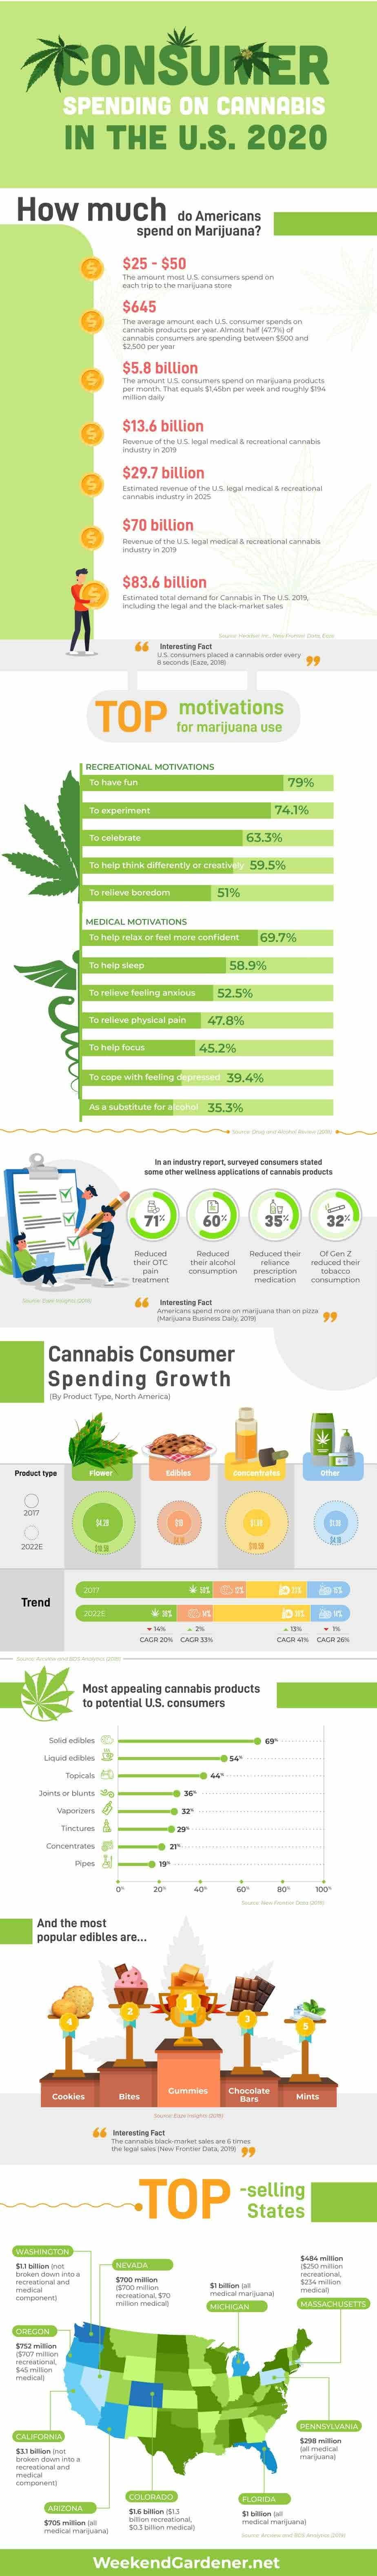 consumer-spending-on-cannabis-in-the-us-2020-infographic